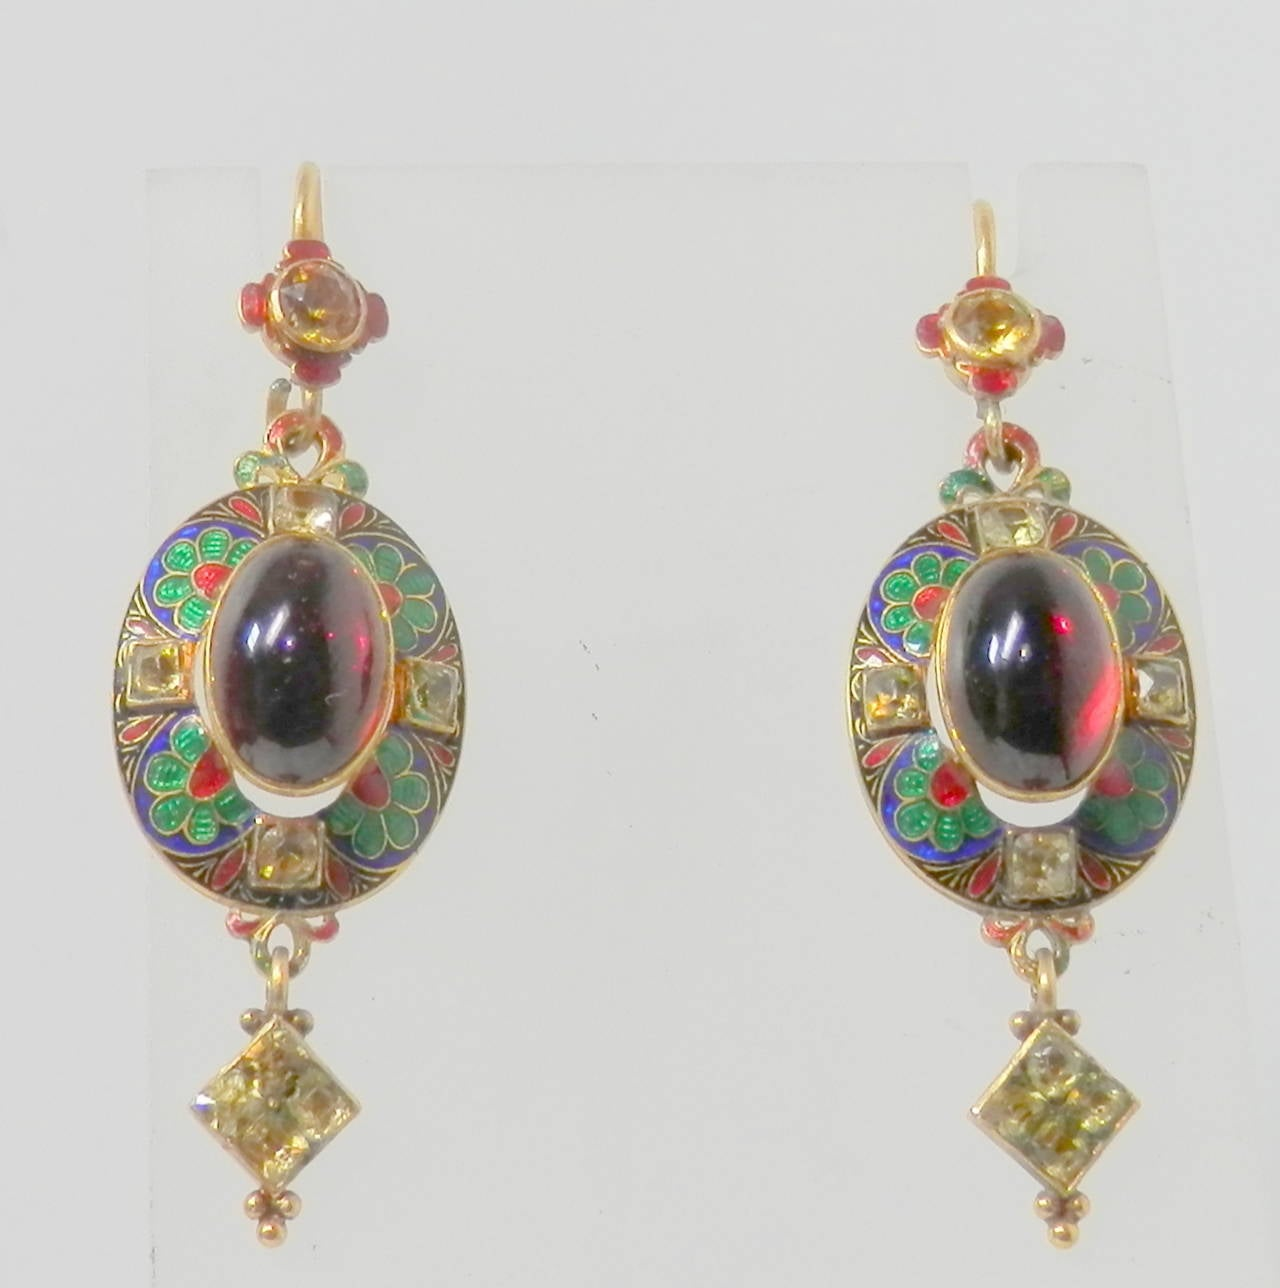 Renaissance revival earrings, circa 1885, with gold, enamel, cabochon garnet and chrysoberyl earrings (the matching pendant is also shown on this site).